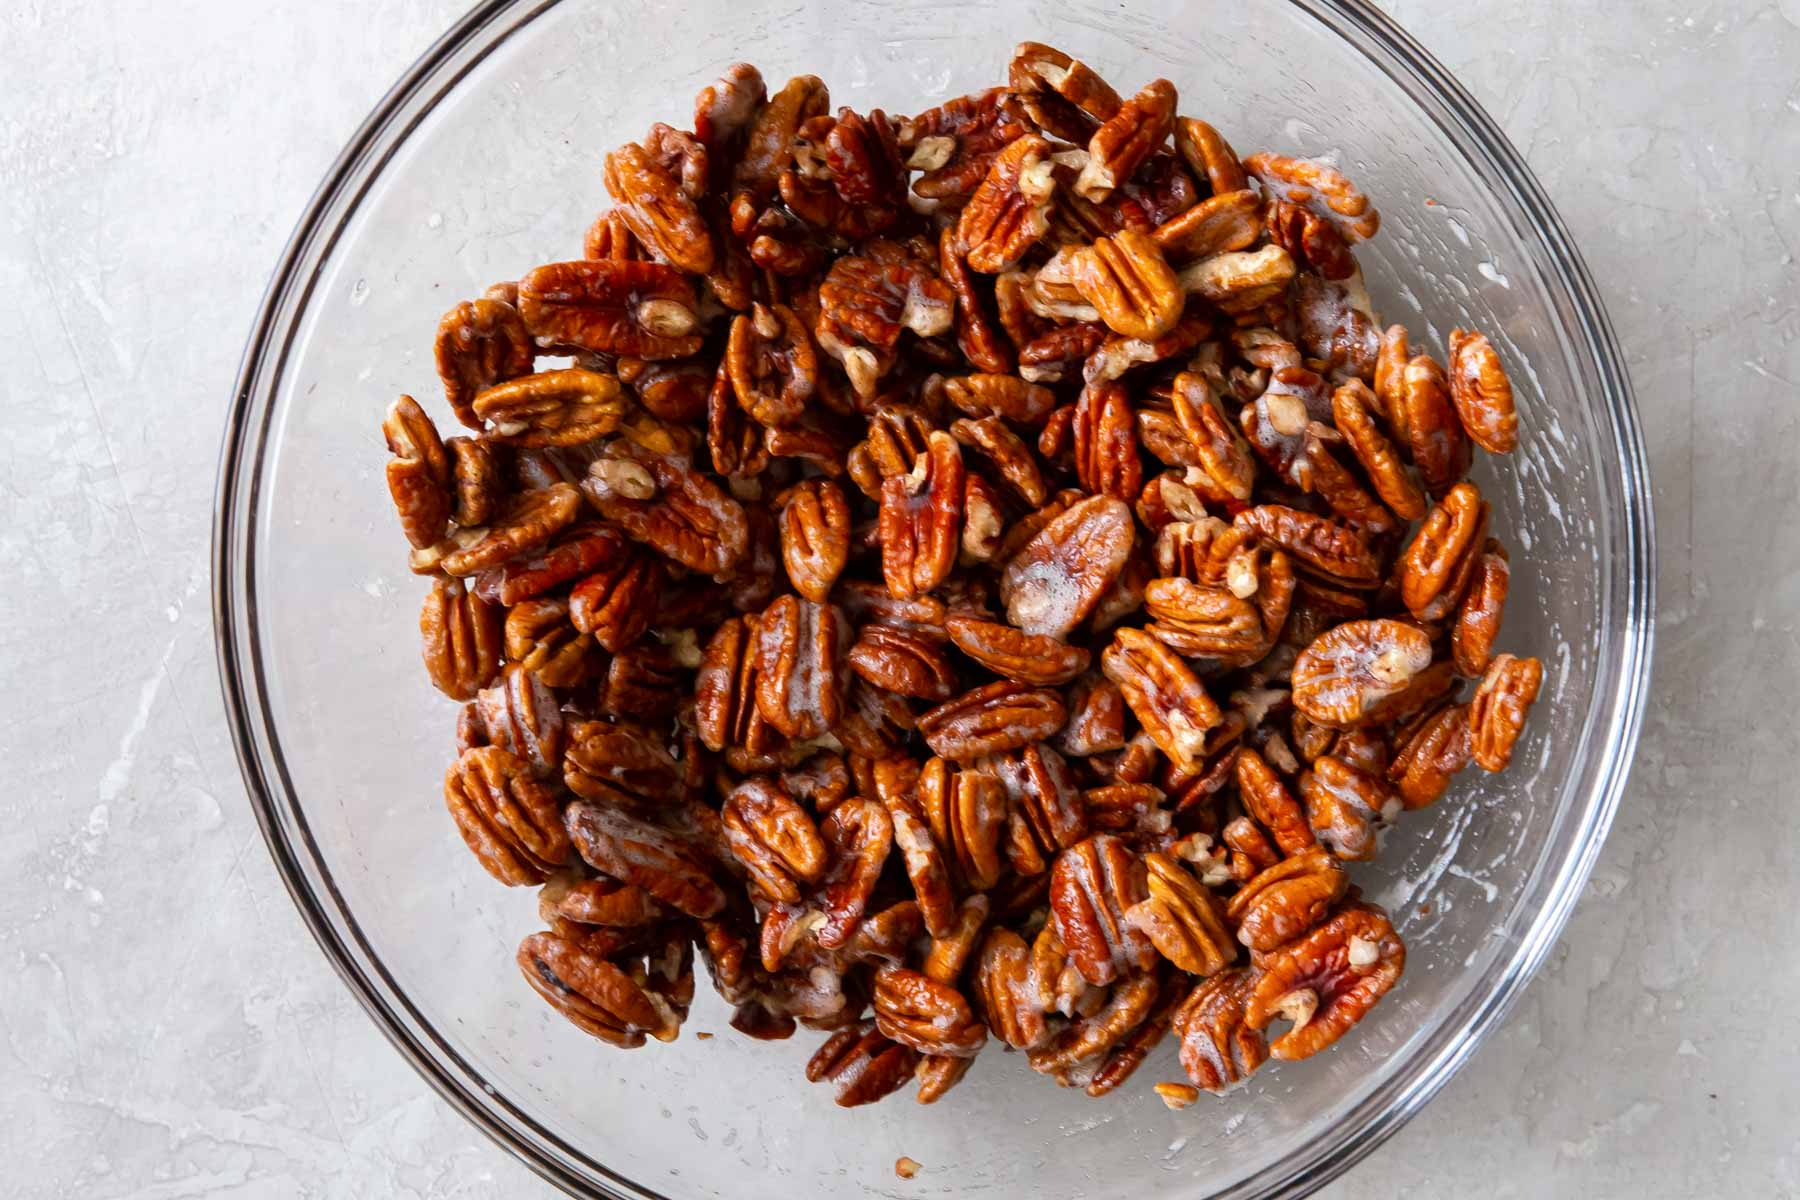 pecans coated with beaten egg white